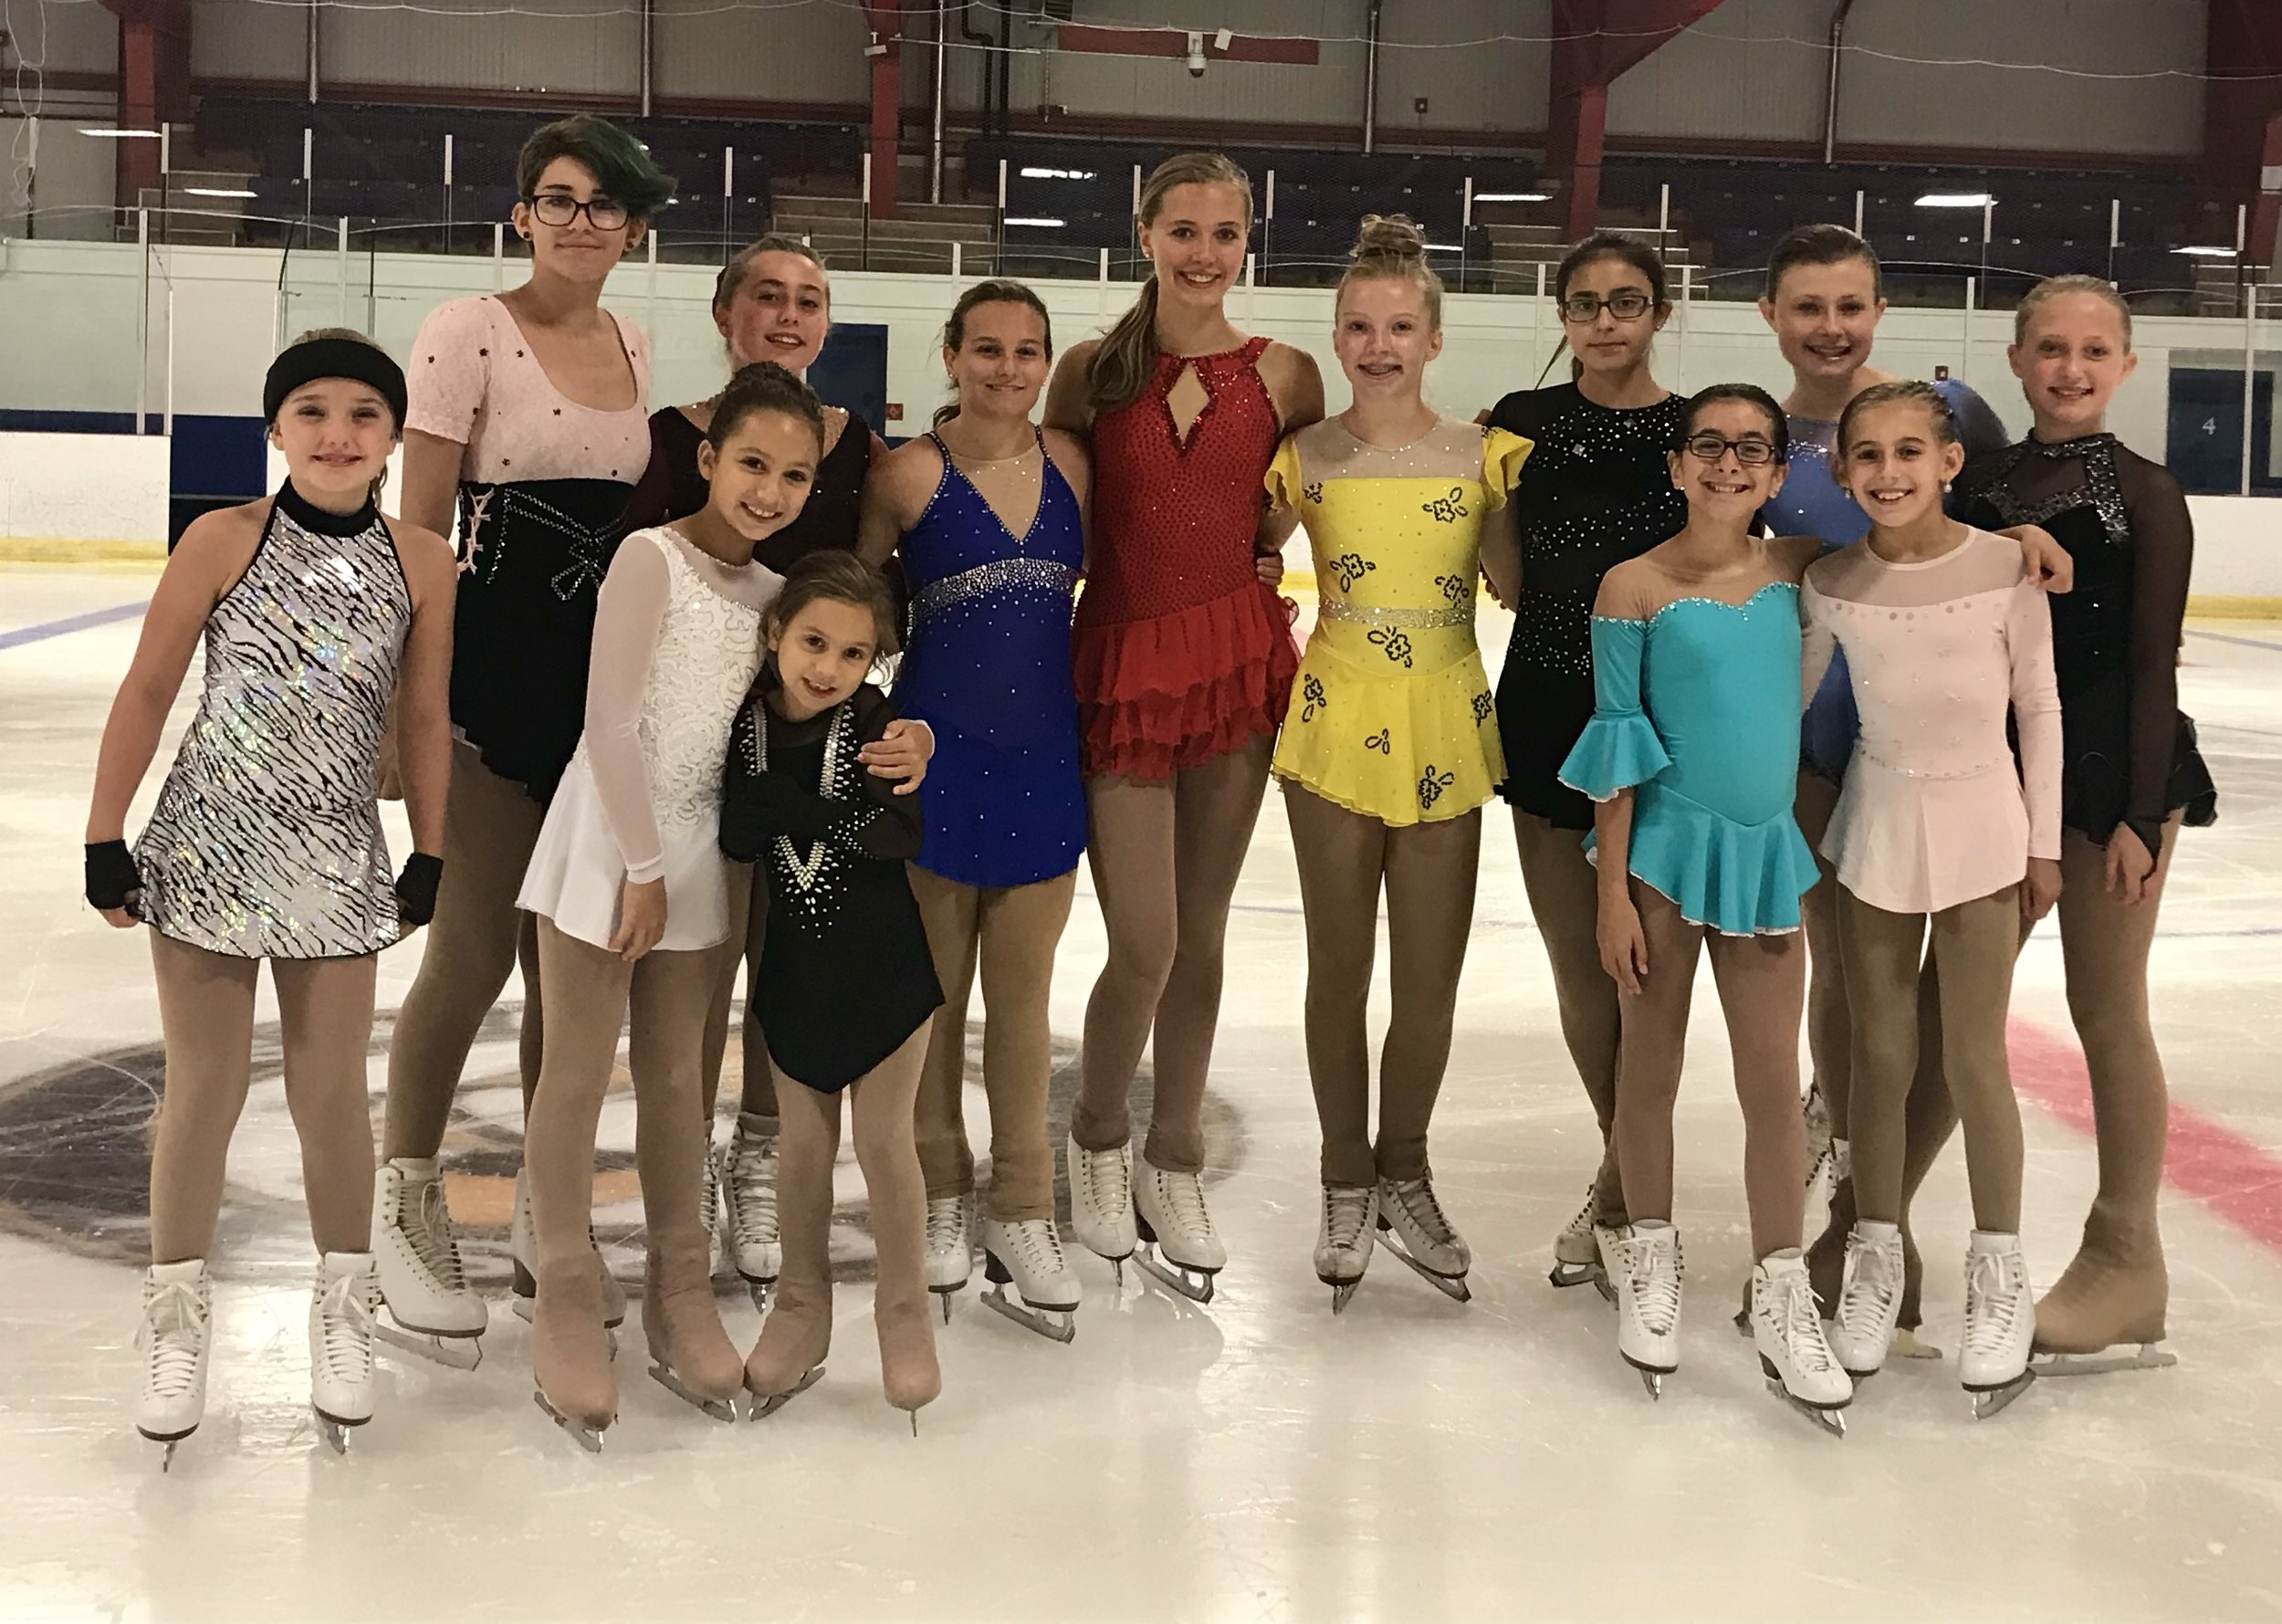 Congratulations - to my fellow skaters on a spectacular performance